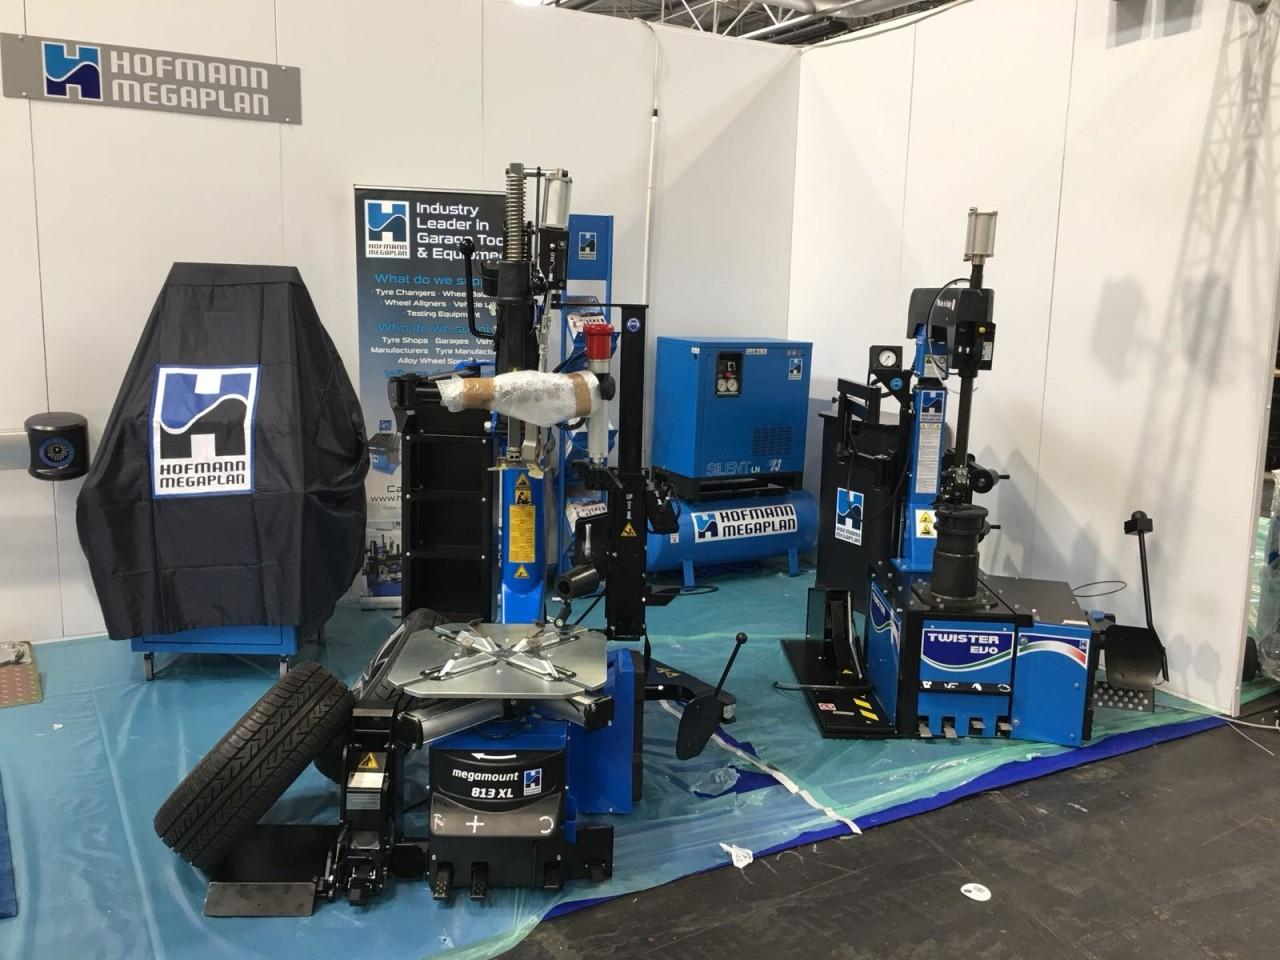 Tyre Equipment all ready for Automechanika 2018